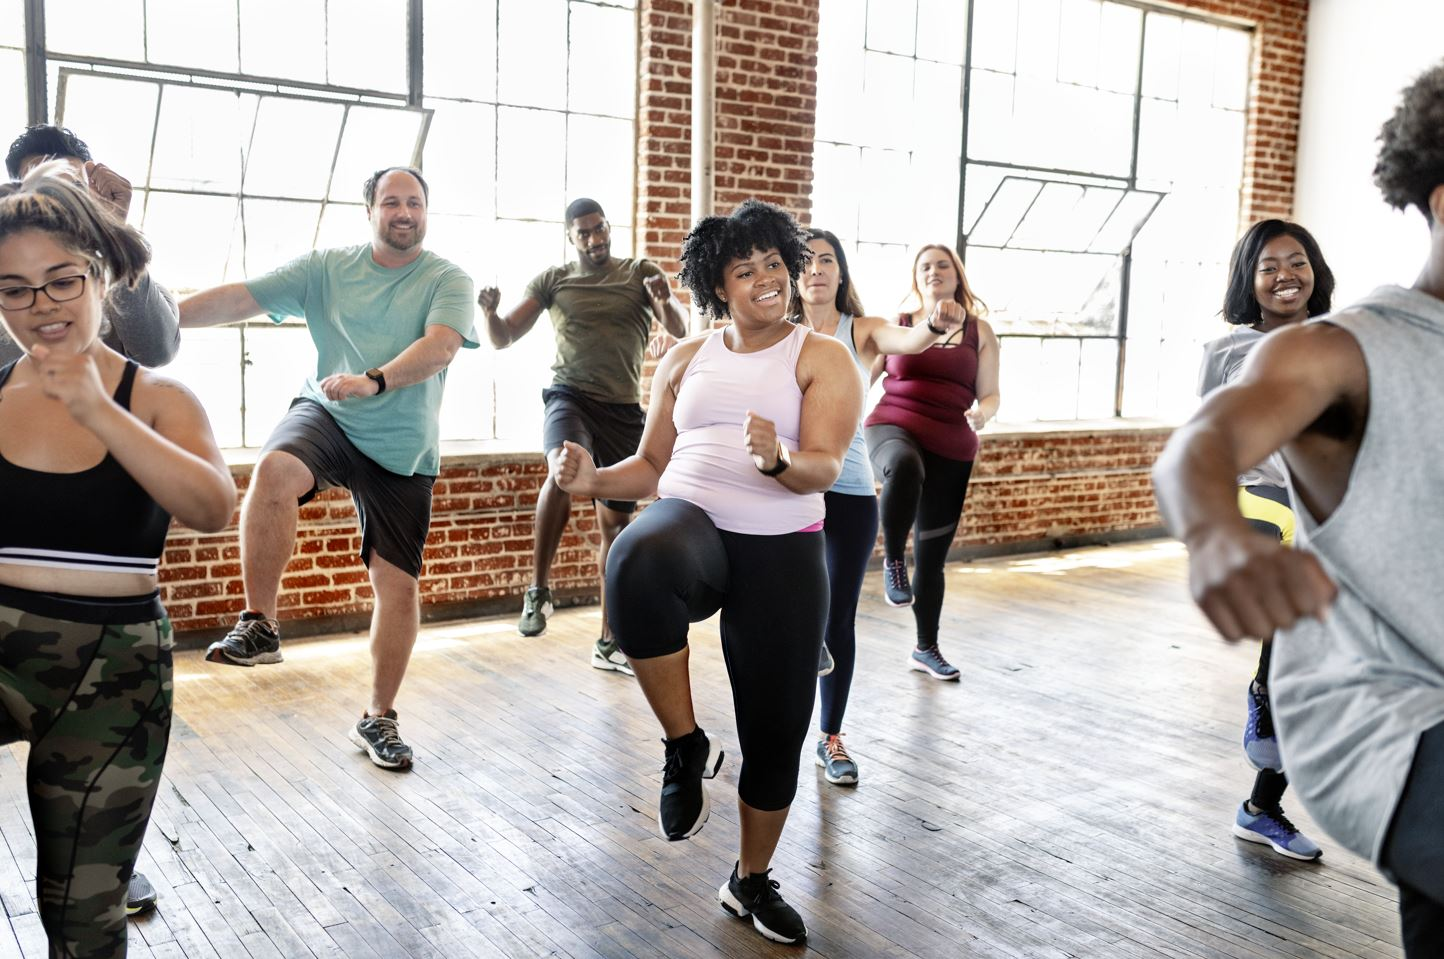 Physical activity improves symptoms of depression, making change possible